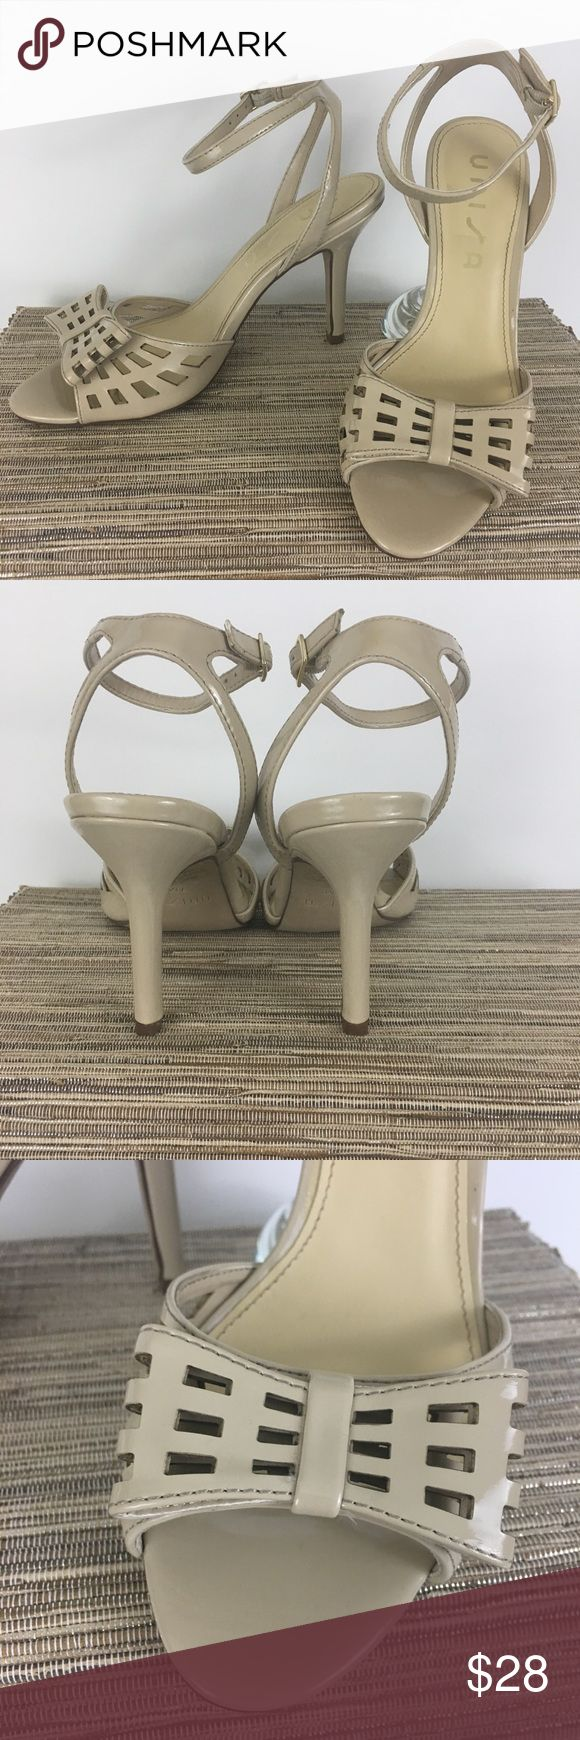 """Nude Bow Heels by Unisa Nude Bow Heels with ankle strap. Cute and fashionable! Heel height: 3  1/2"""" Unisa Shoes"""